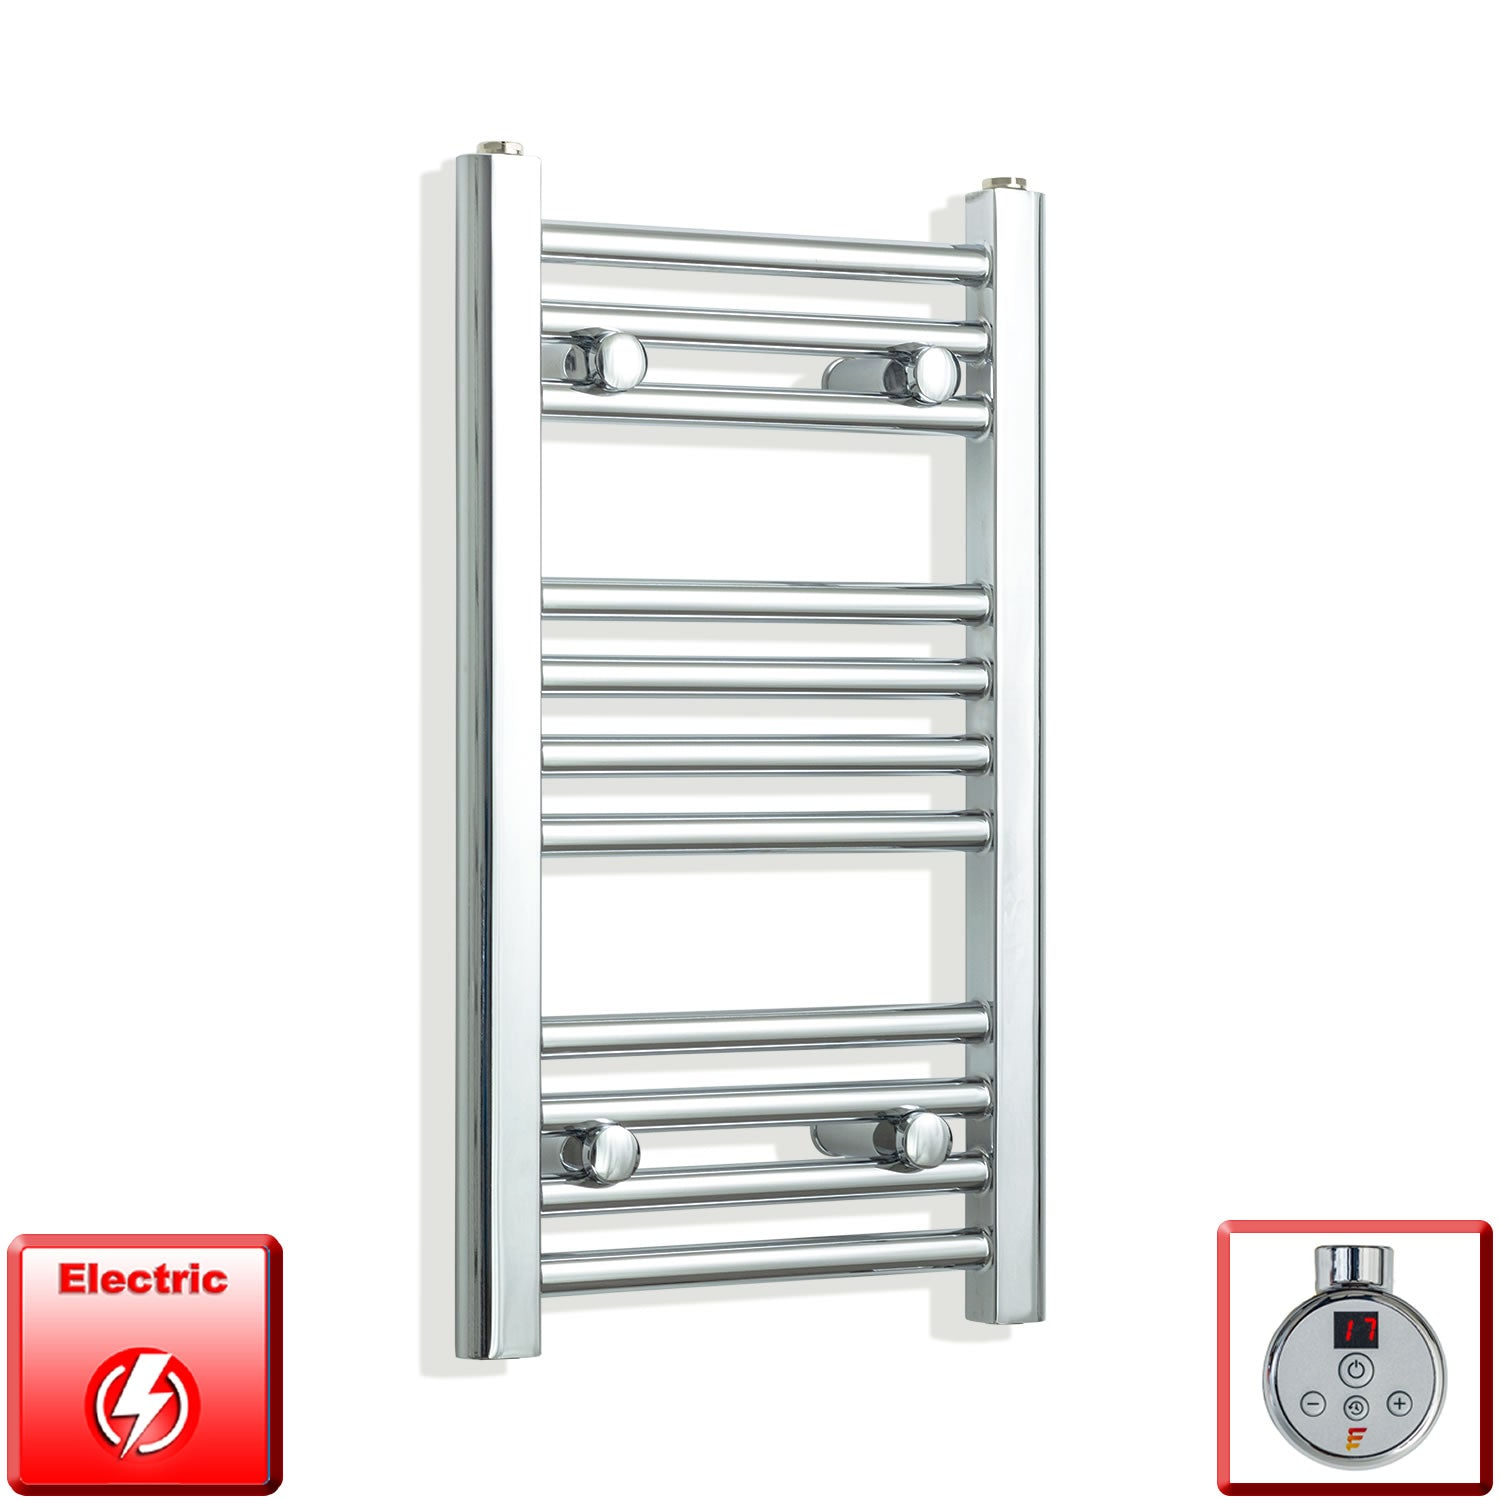 350mm Wide 600mm High Pre-Filled Chrome Electric Towel Rail Radiator With Thermostatic DIGI Element